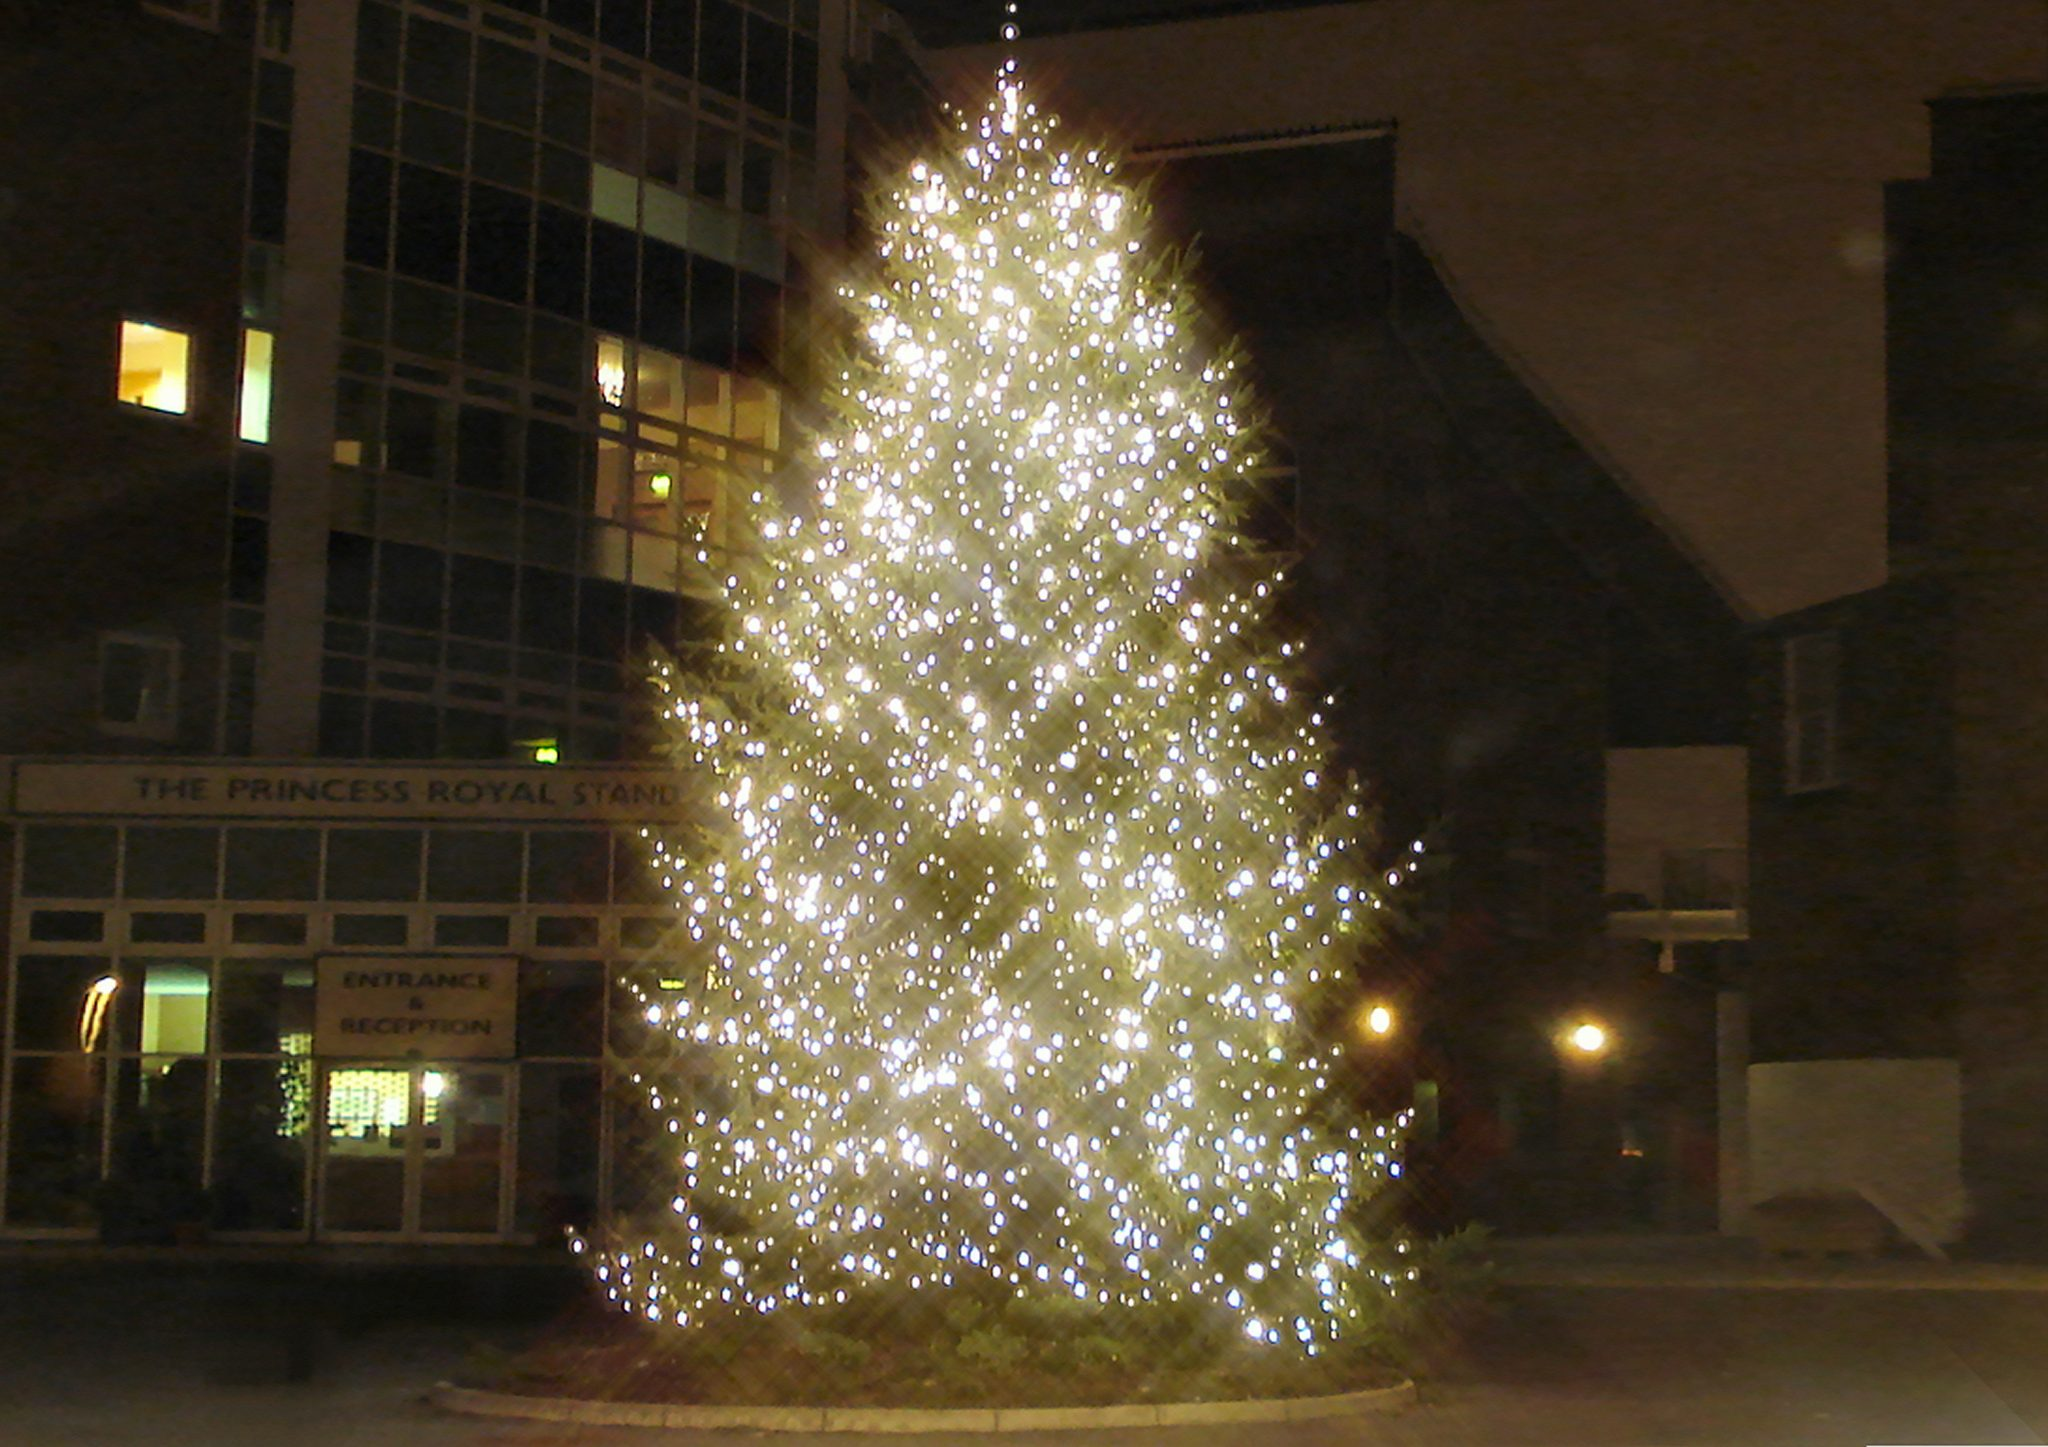 Giant large fresh Christmas tree in London